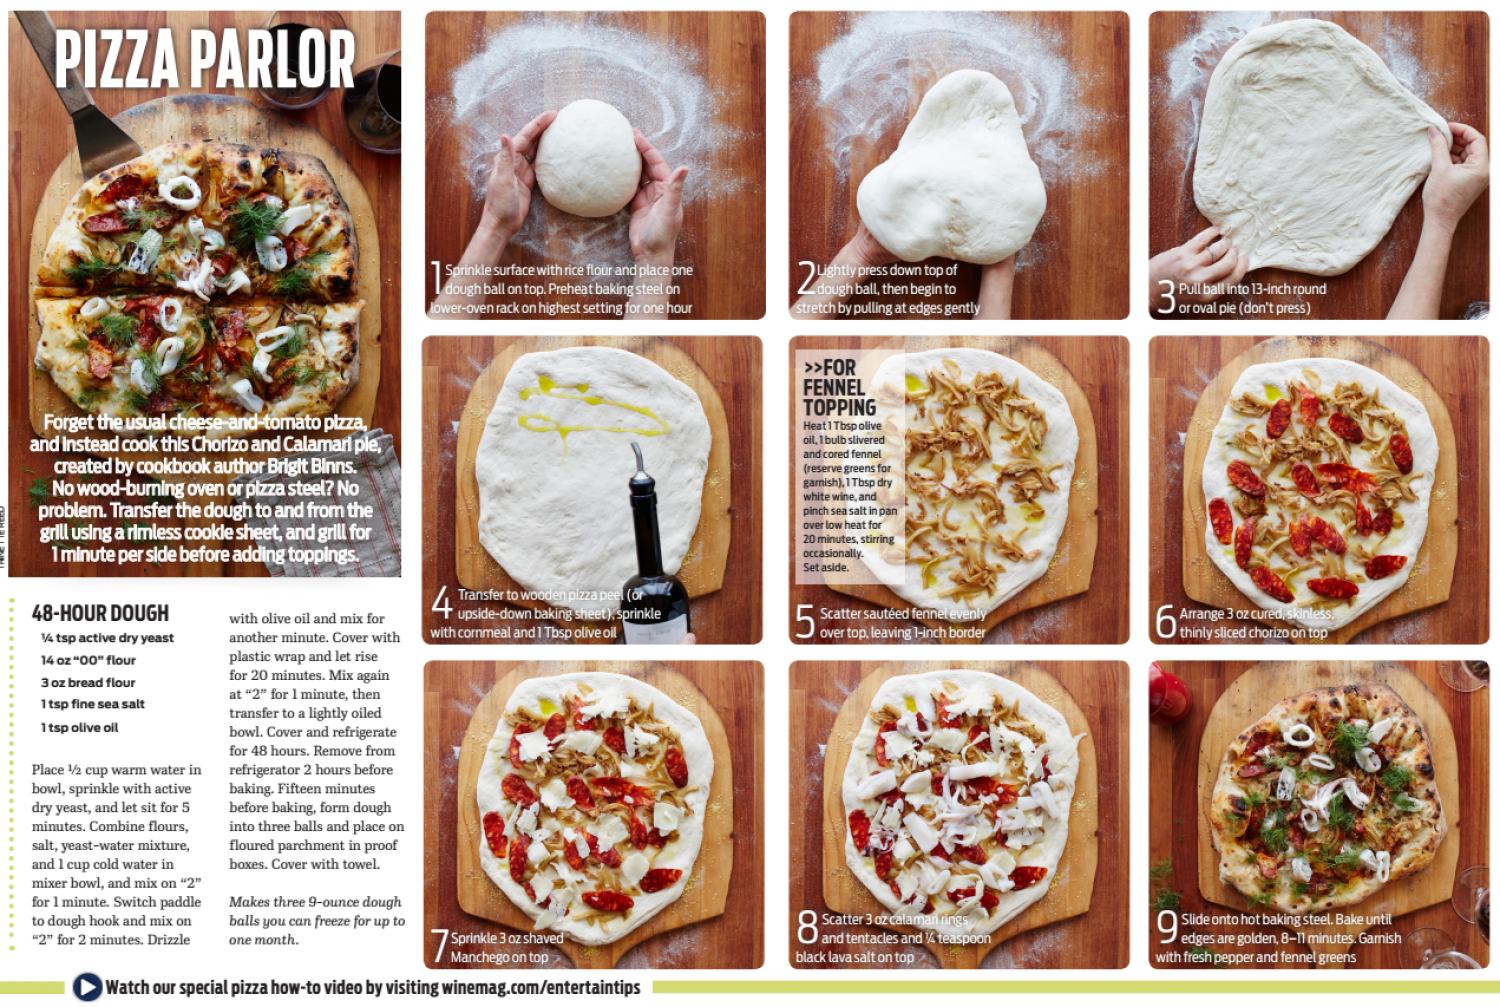 Chorizo & Calamari Pizza - A Recipe in 9 Easy Steps Infographic